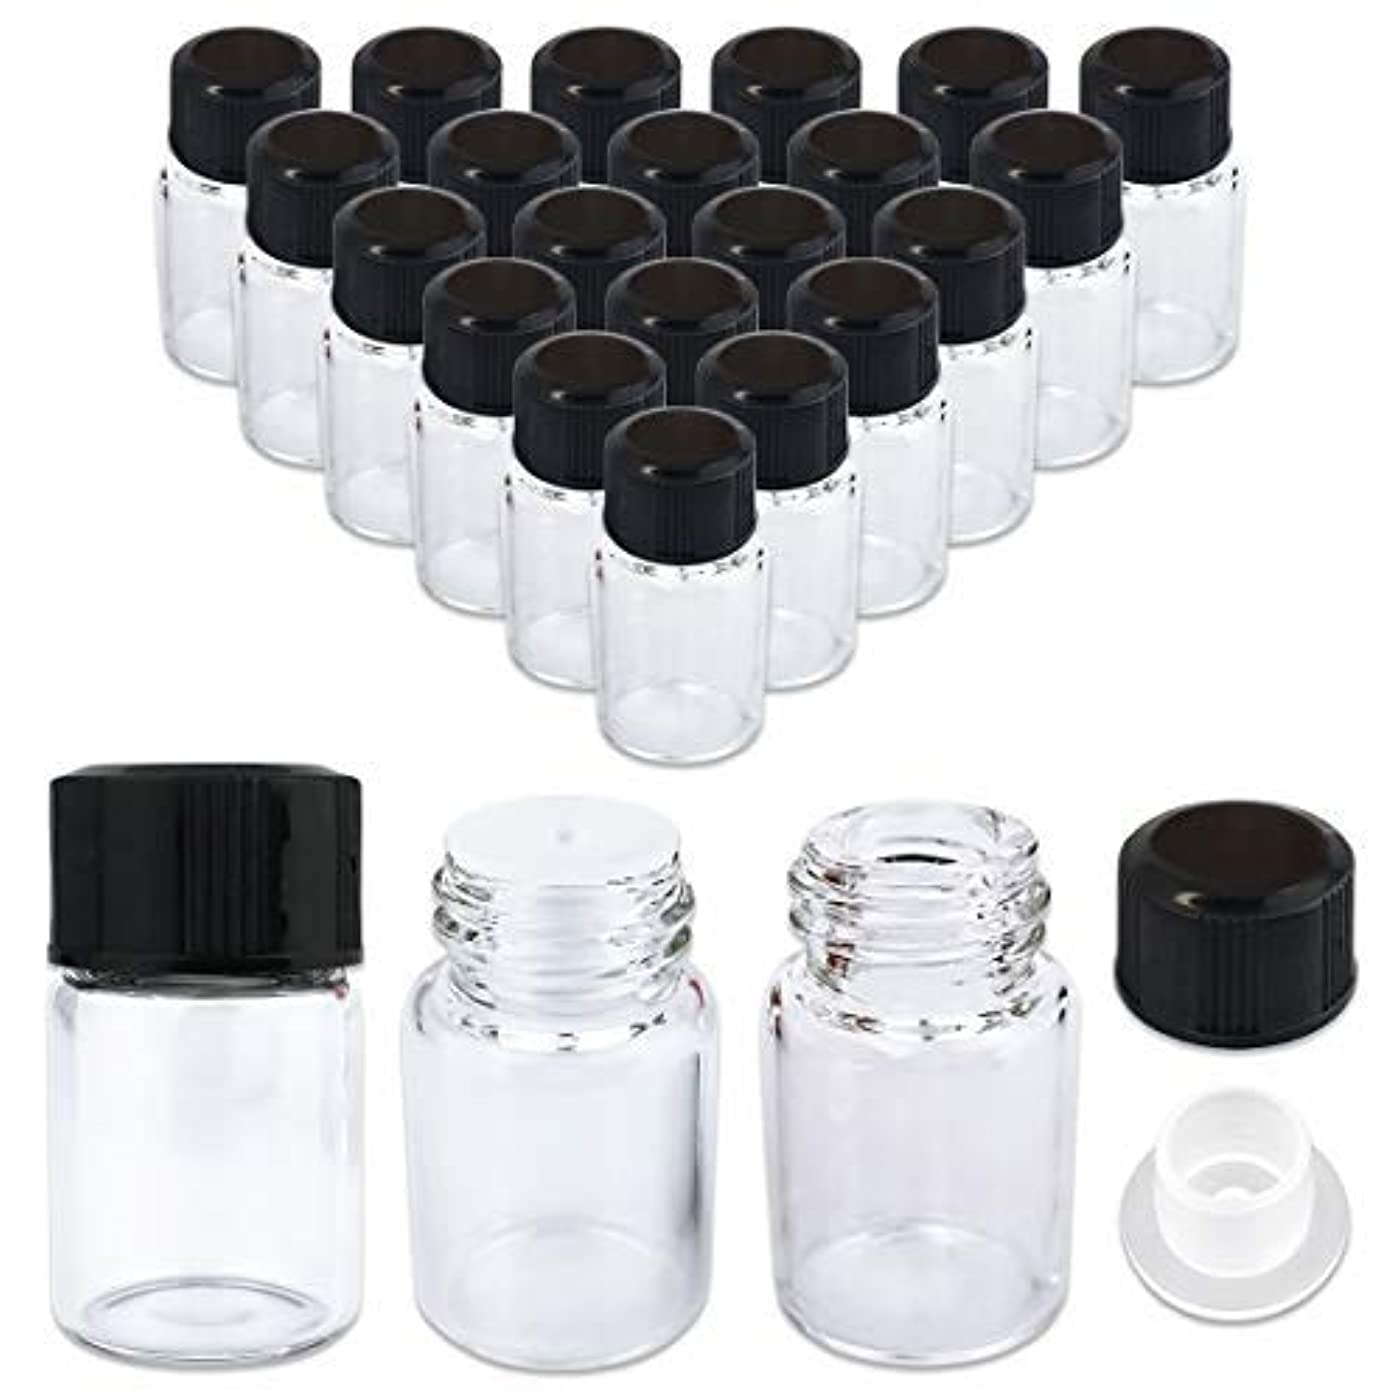 煙突蛾バンドル24 Packs Beauticom 2ML Clear Glass Vial for Essential Oils, Aromatherapy, Fragrance, Serums, Spritzes, with Orifice...